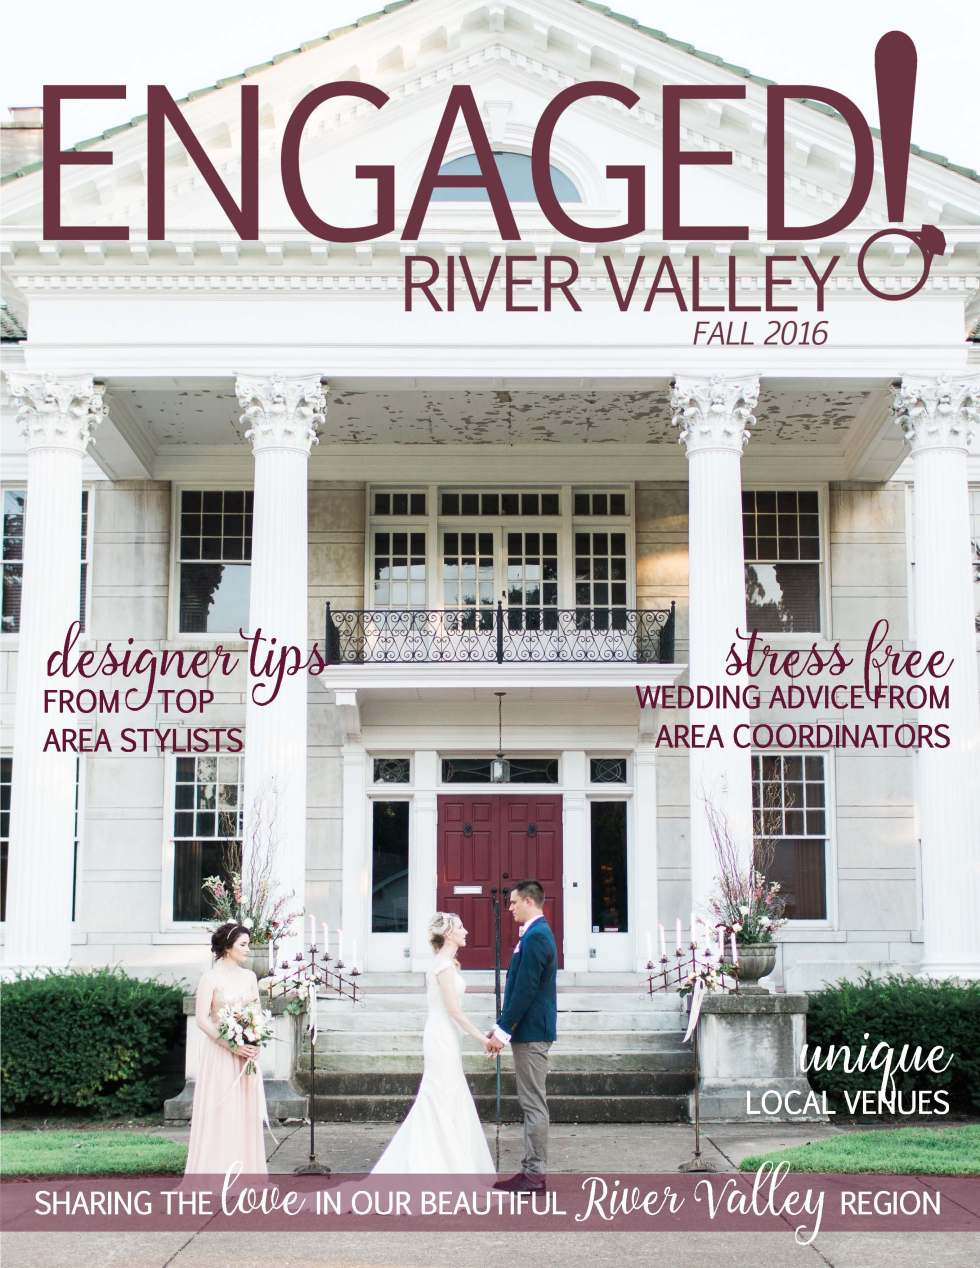 engaged-river-valley-fall-2016